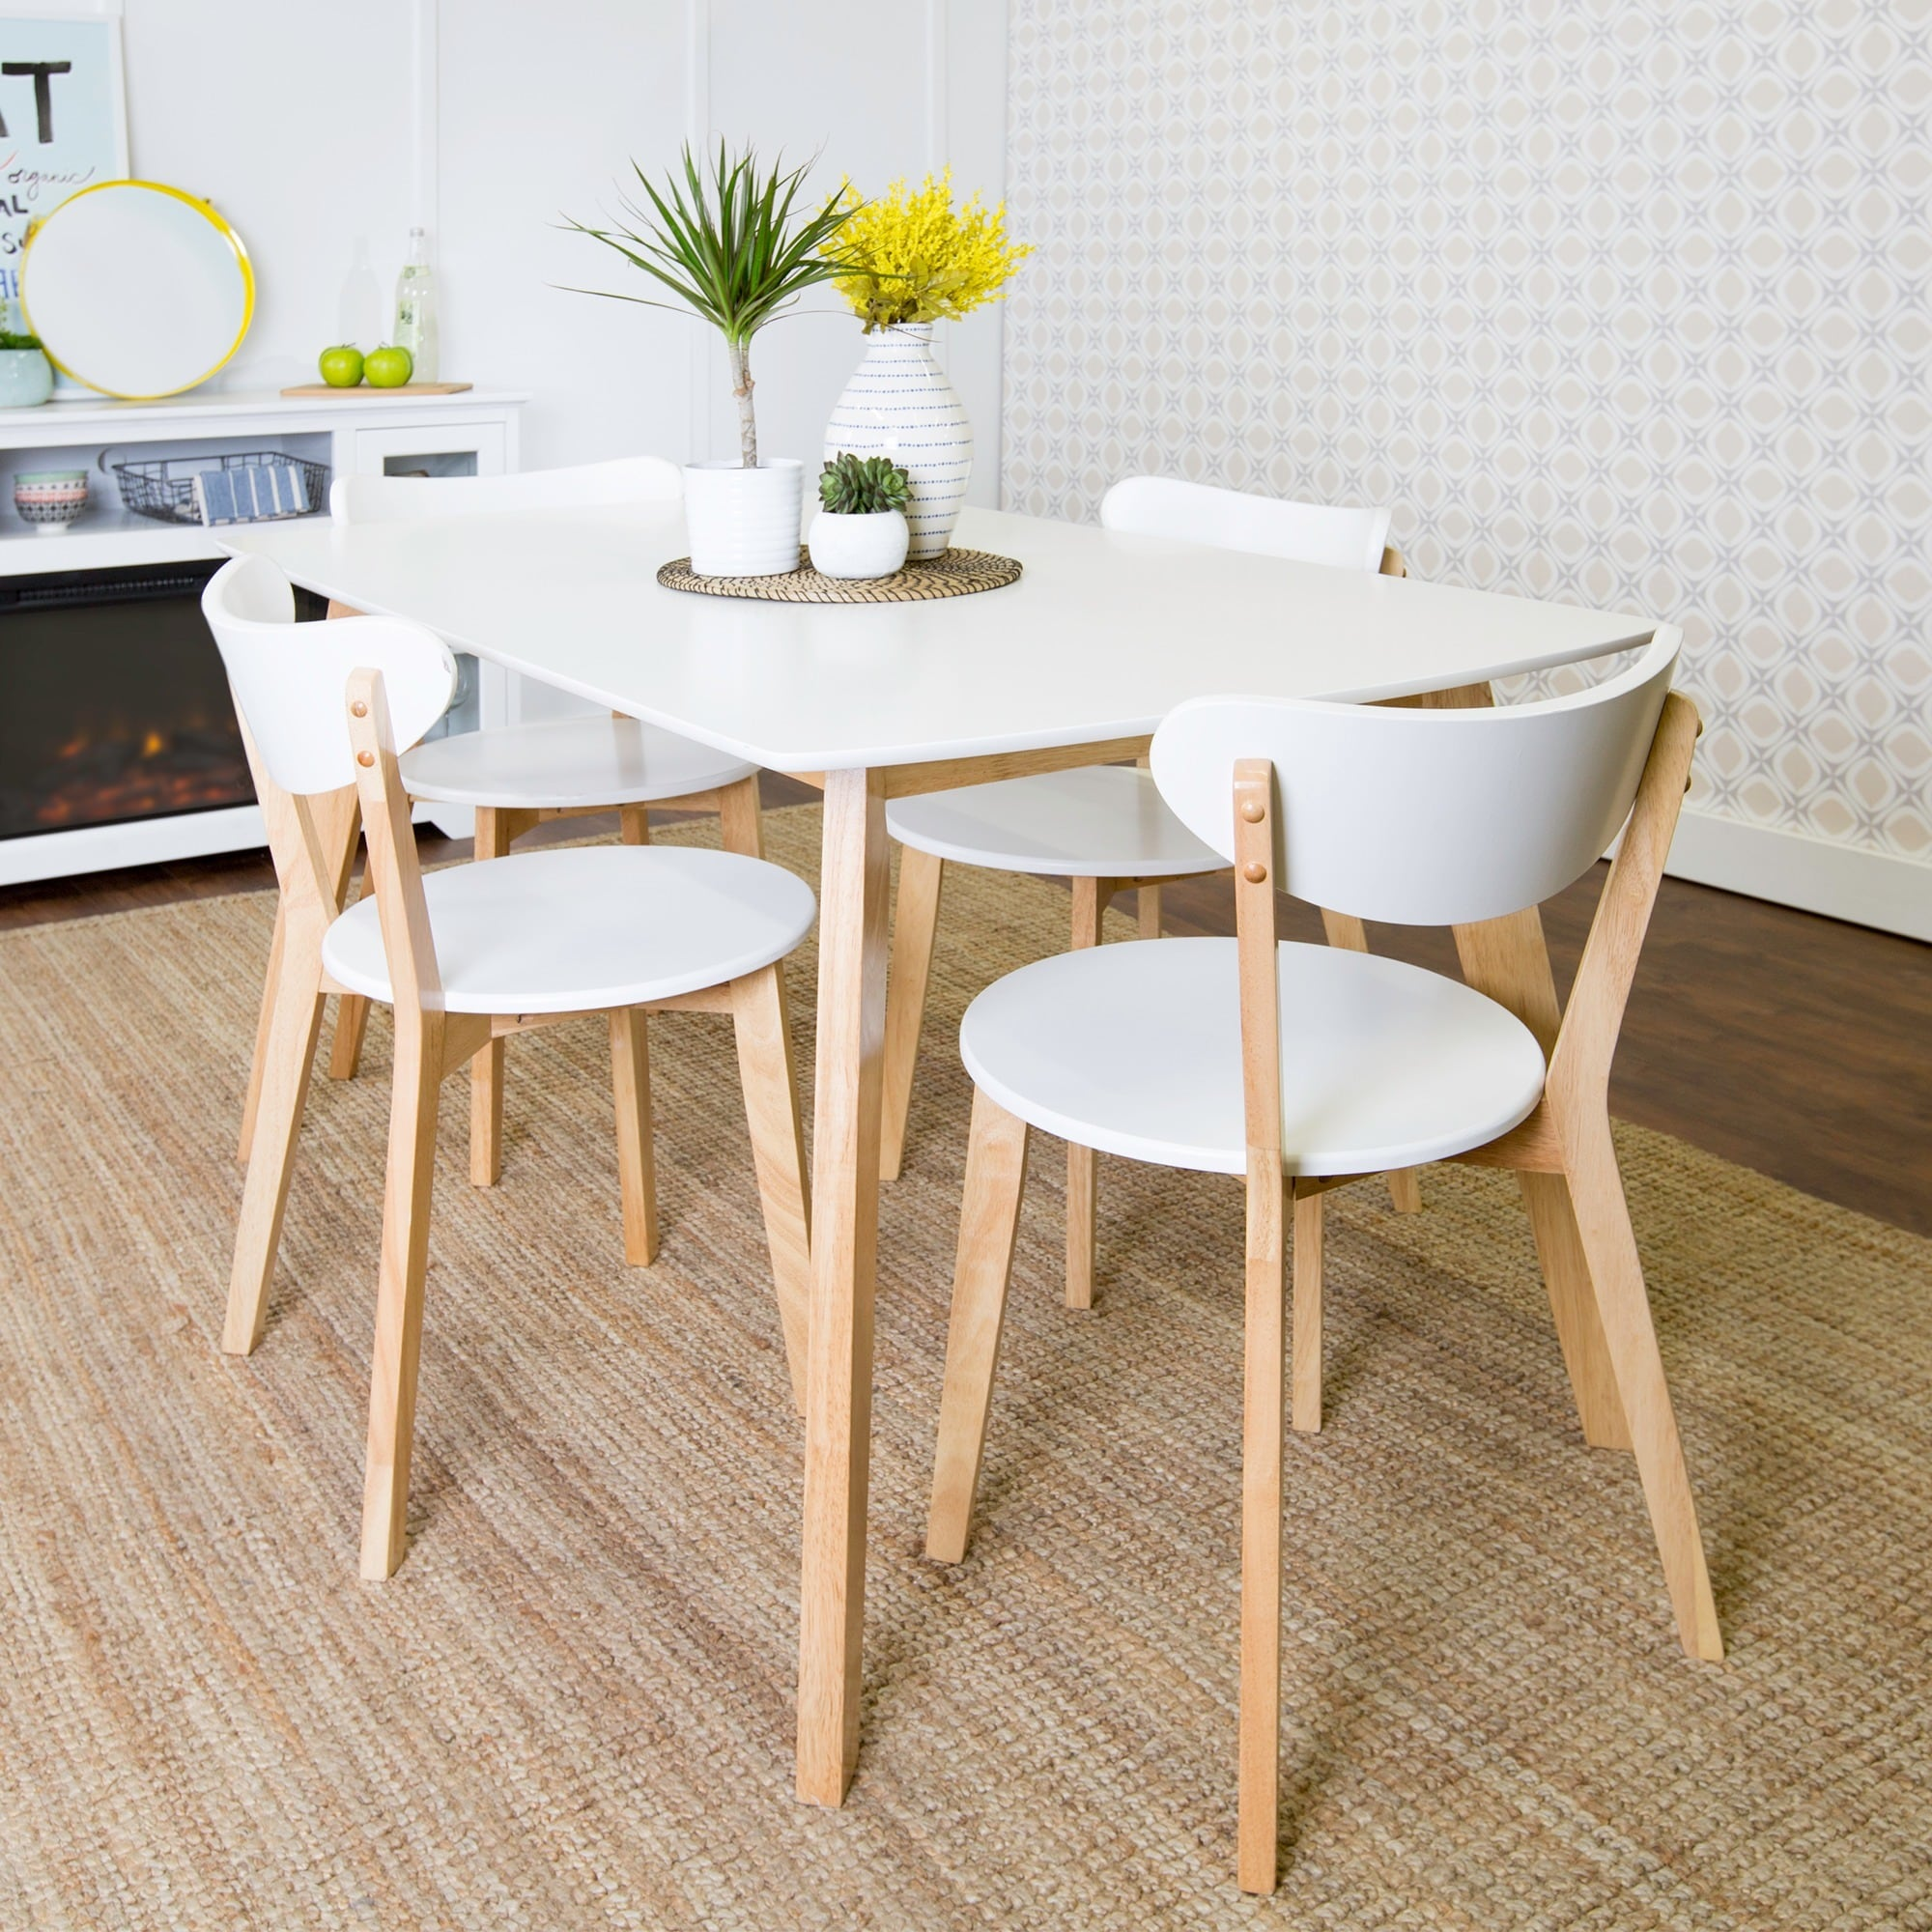 Beau Shop Palm Canyon Enclave 5 Piece Retro Modern Wood Dining Set   On Sale    Free Shipping Today   Overstock.com   21258277